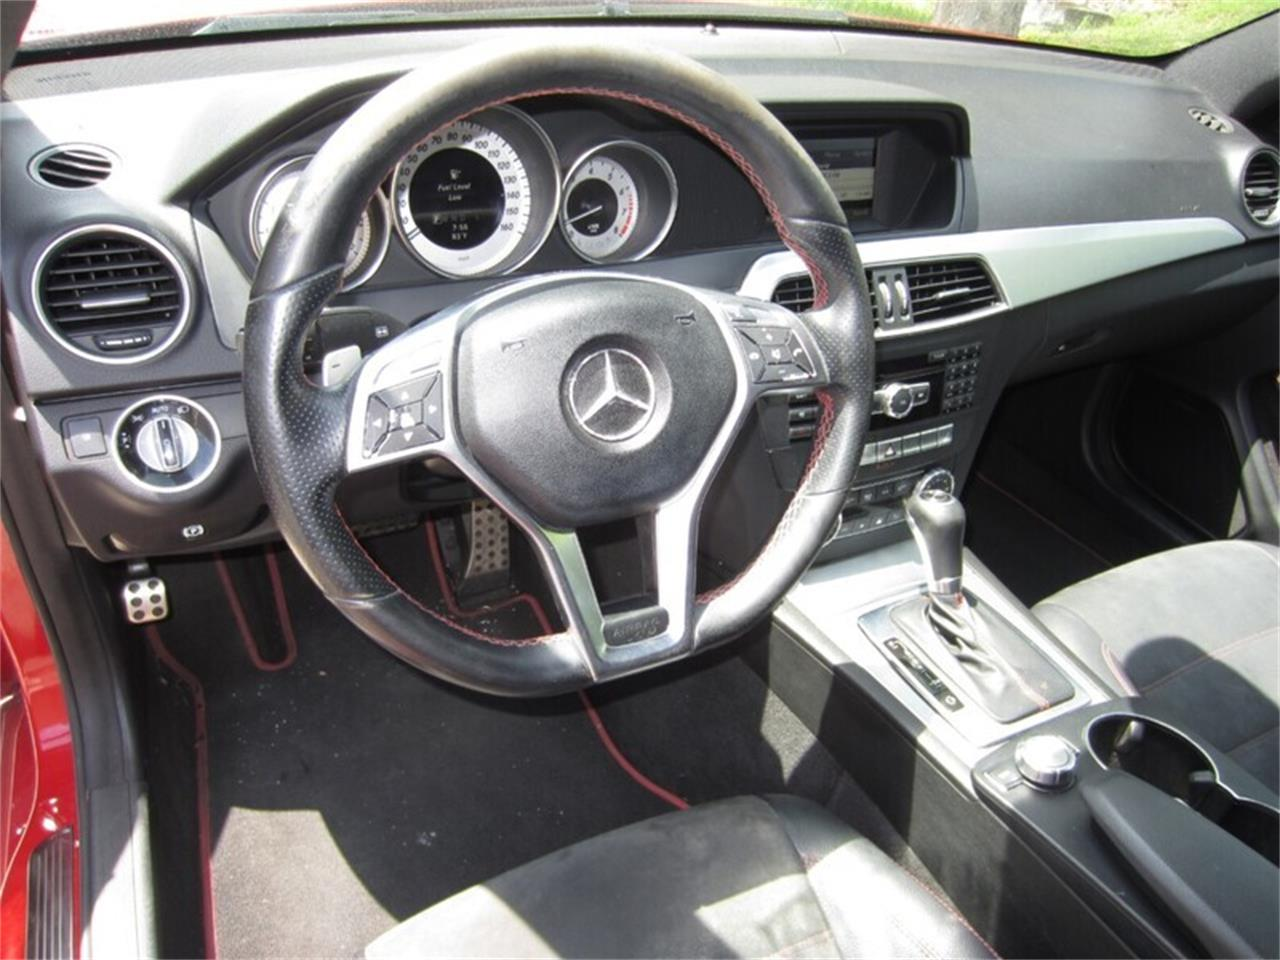 2013 Mercedes-Benz C250 for sale in Delray Beach, FL – photo 10